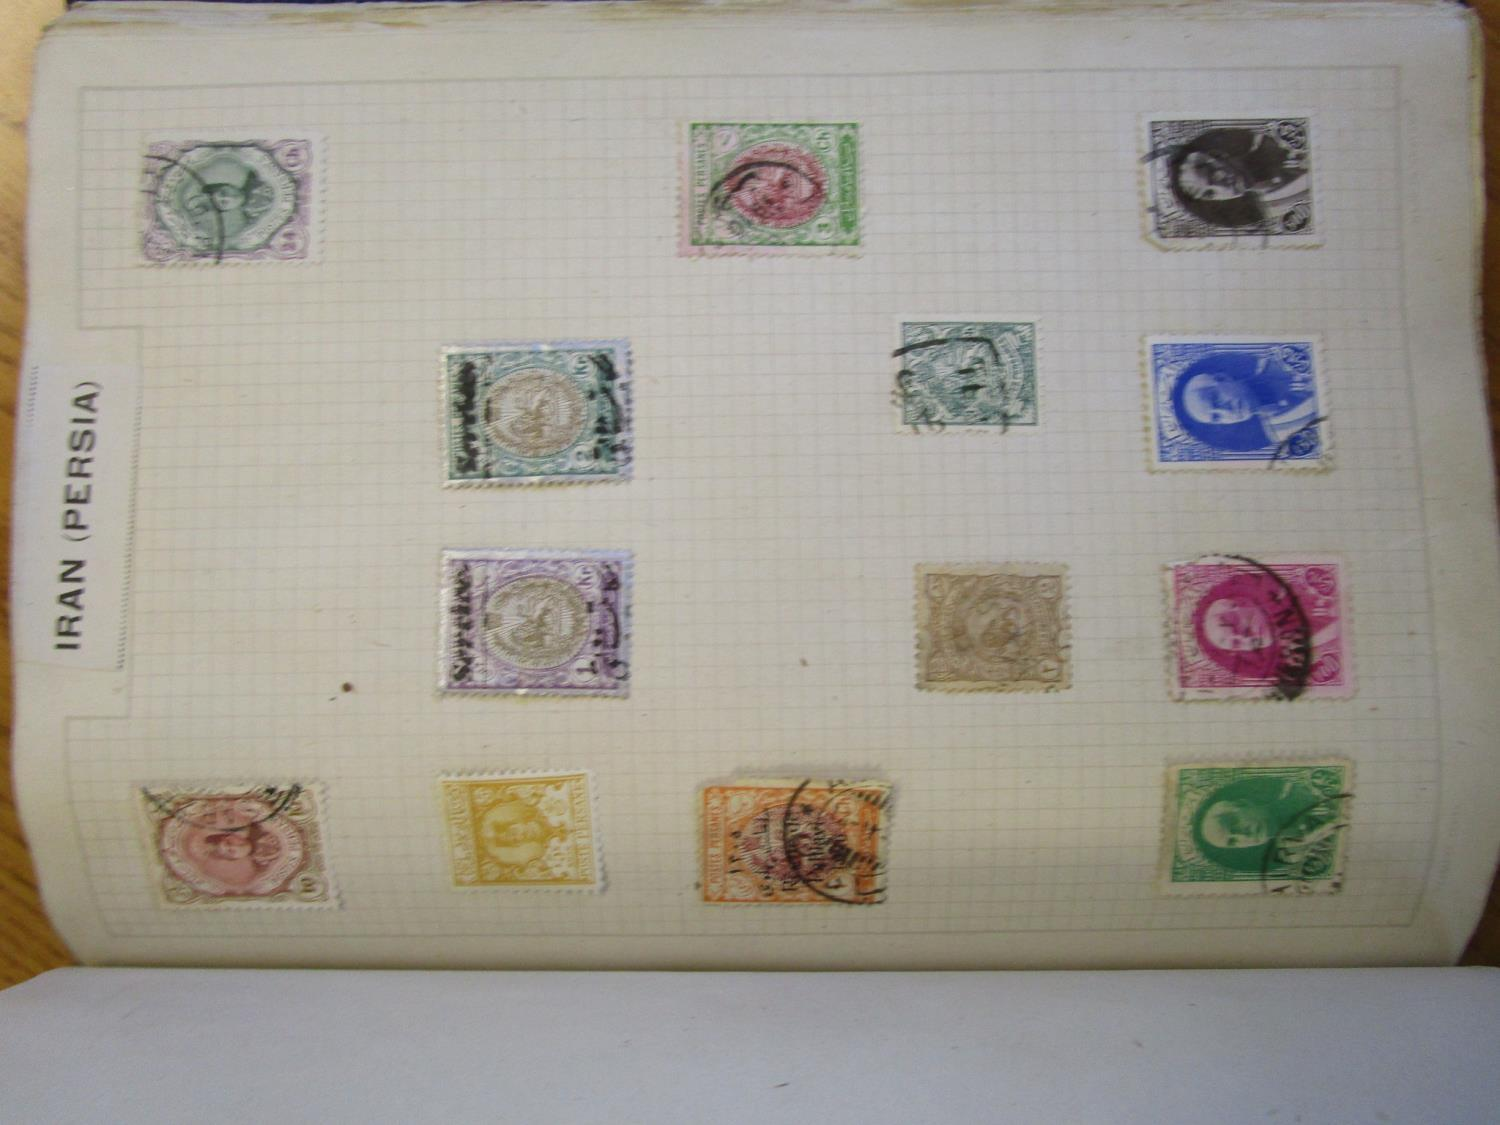 Mixed stamps from around the world mounted in albums and loose to include Victorian Penny Reds, - Image 14 of 18